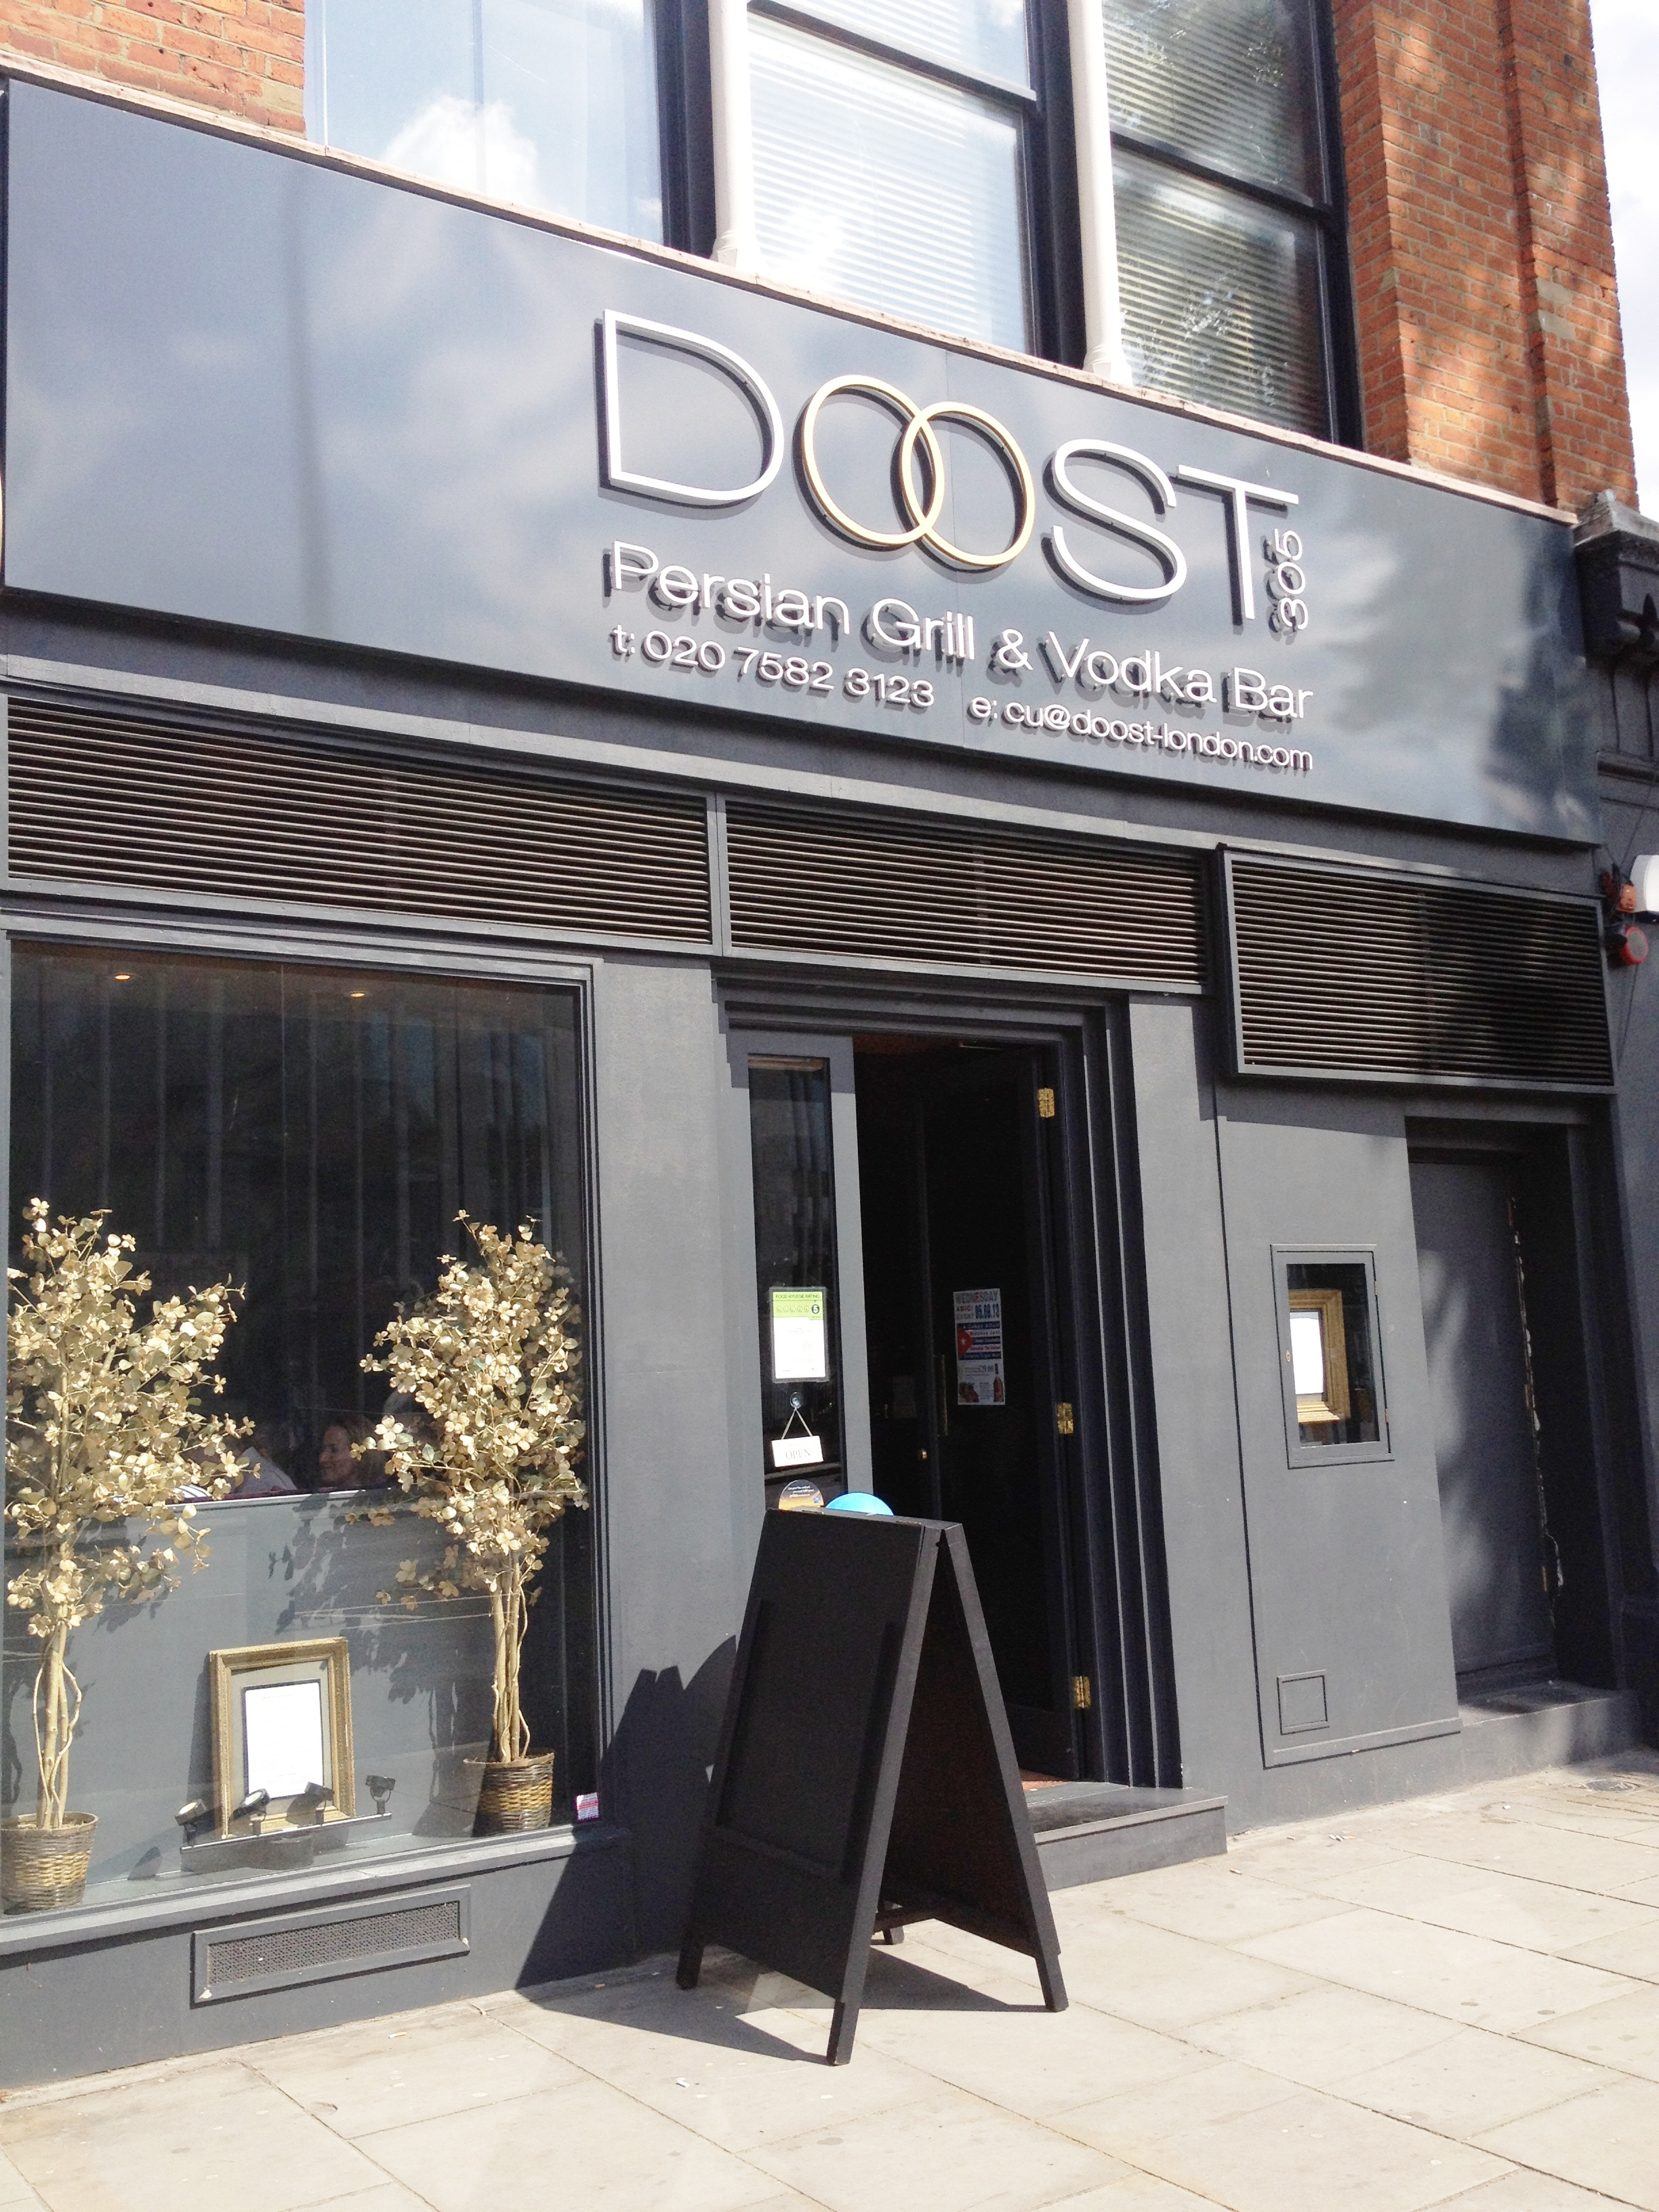 Doost Persian Grill & Vodka Bar